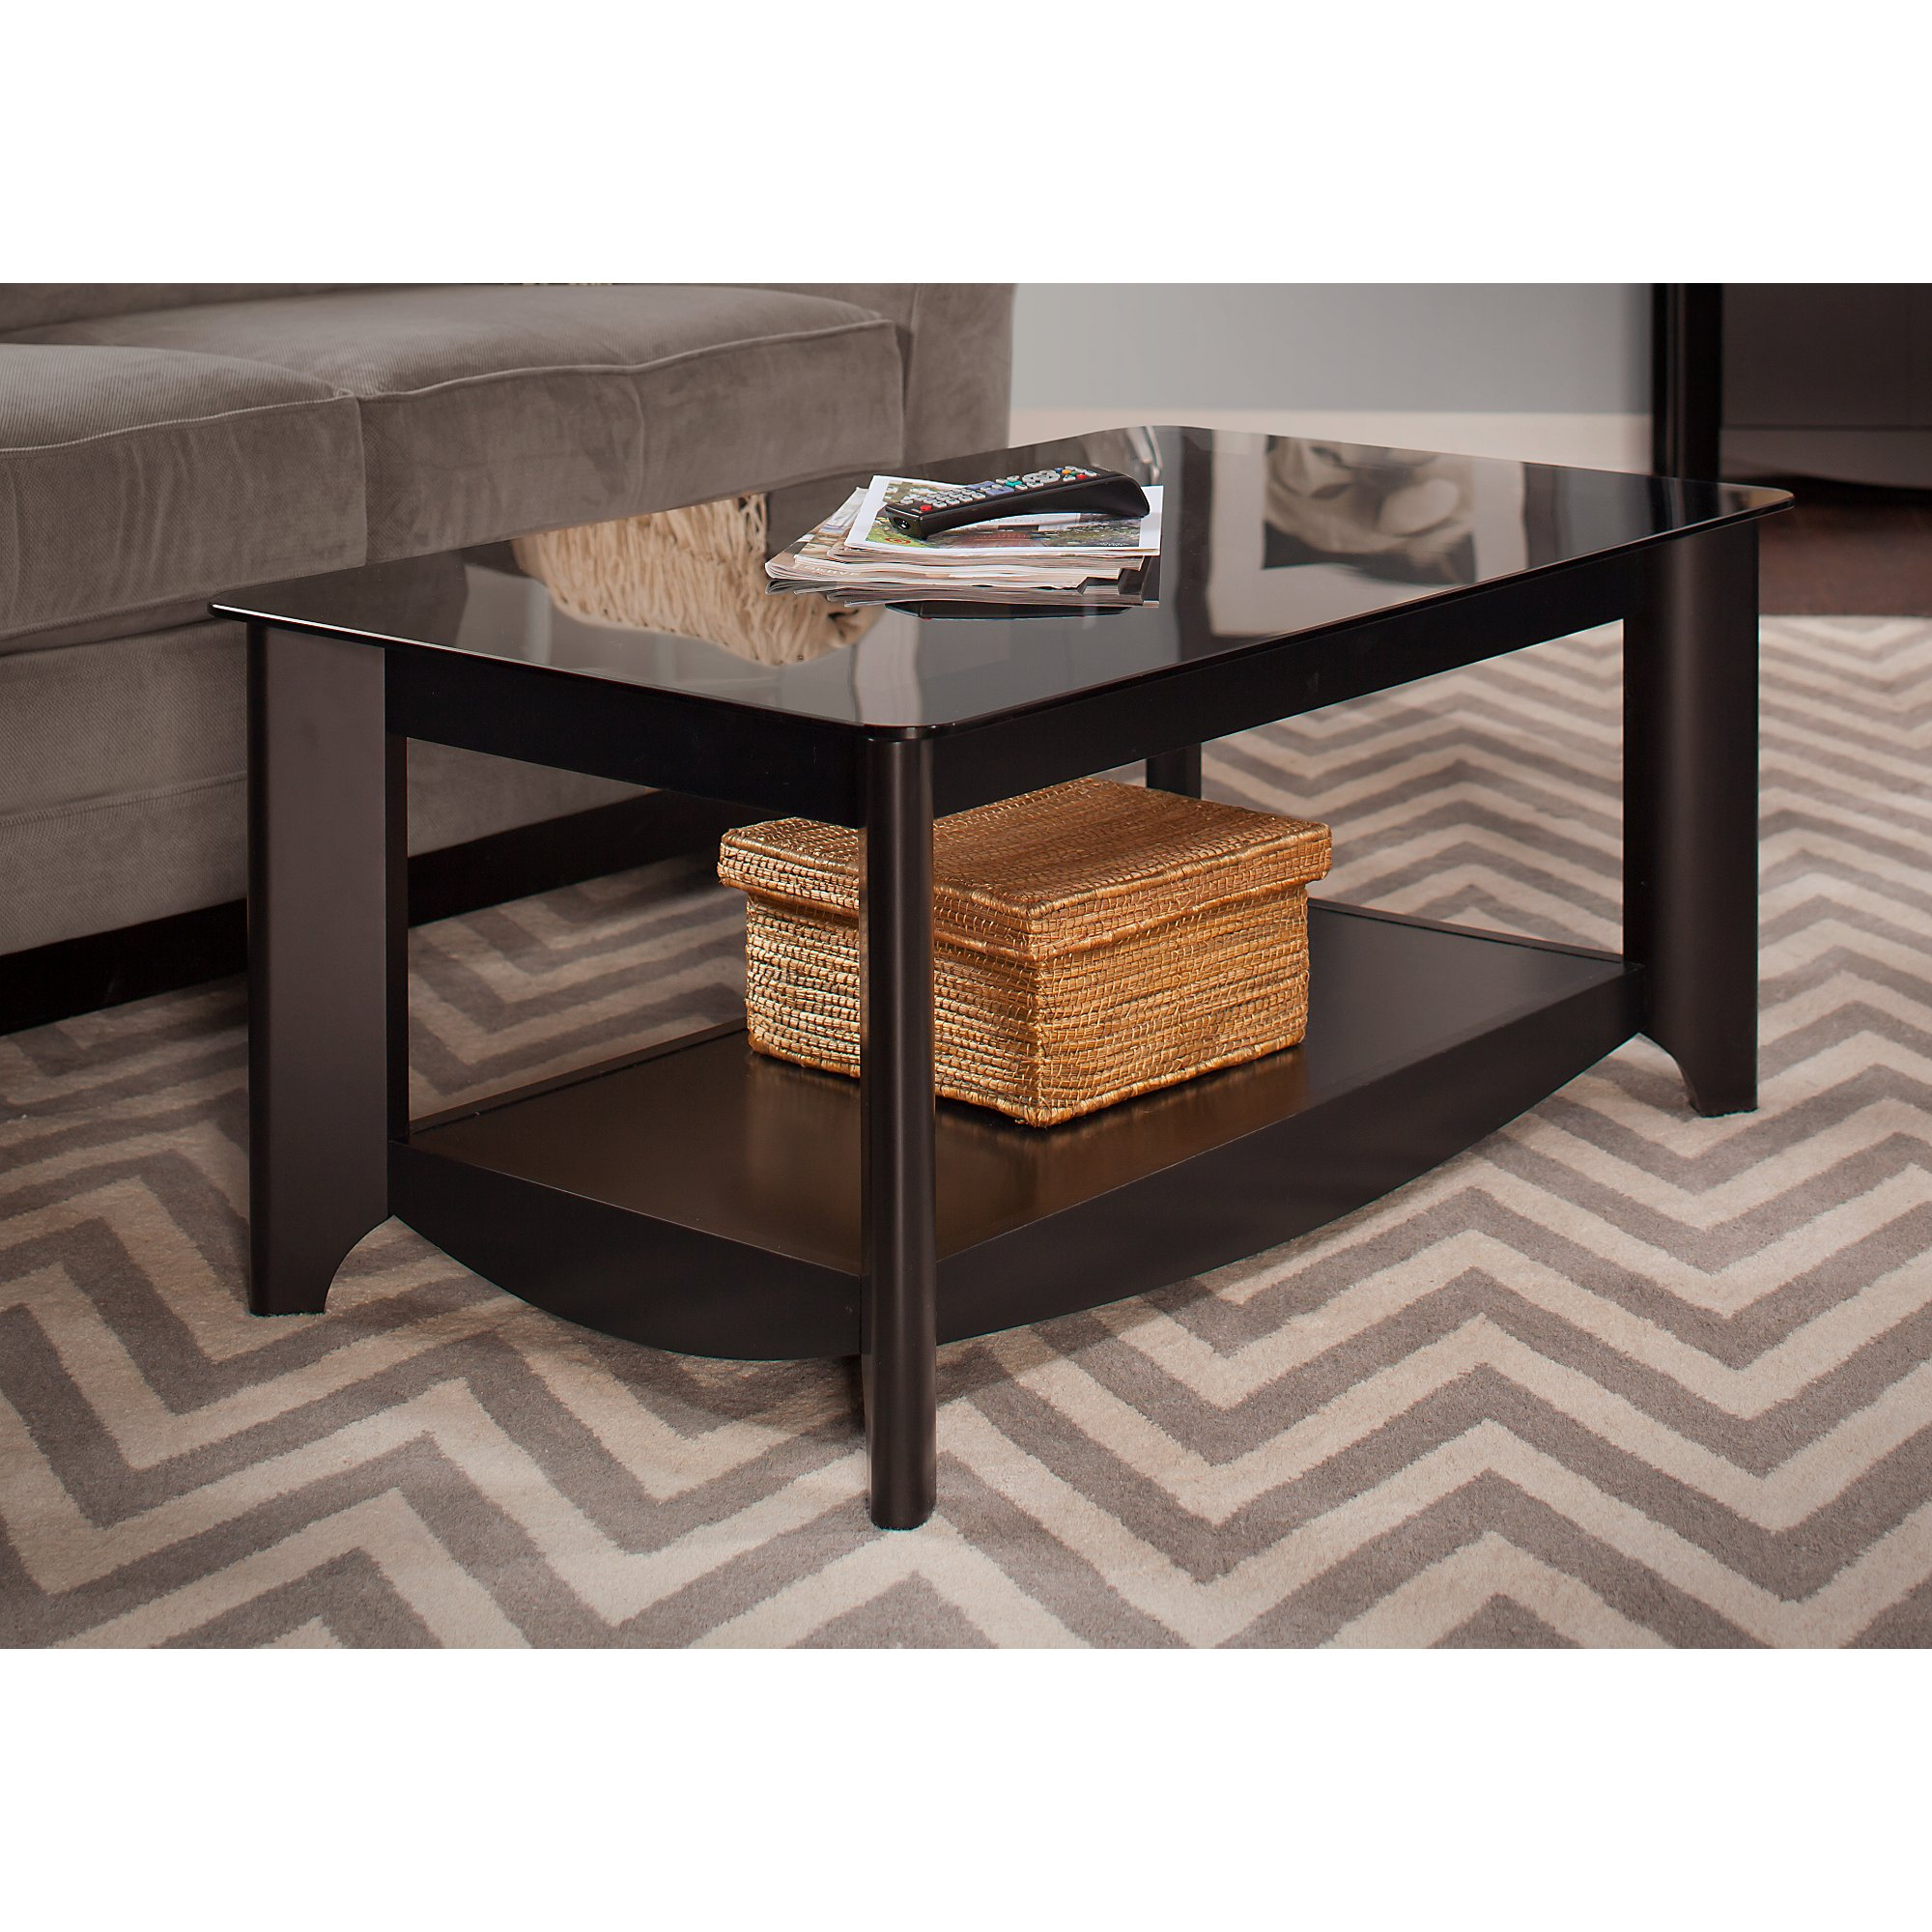 Bush Furniture Aero Collection Coffee Table in Classic Black